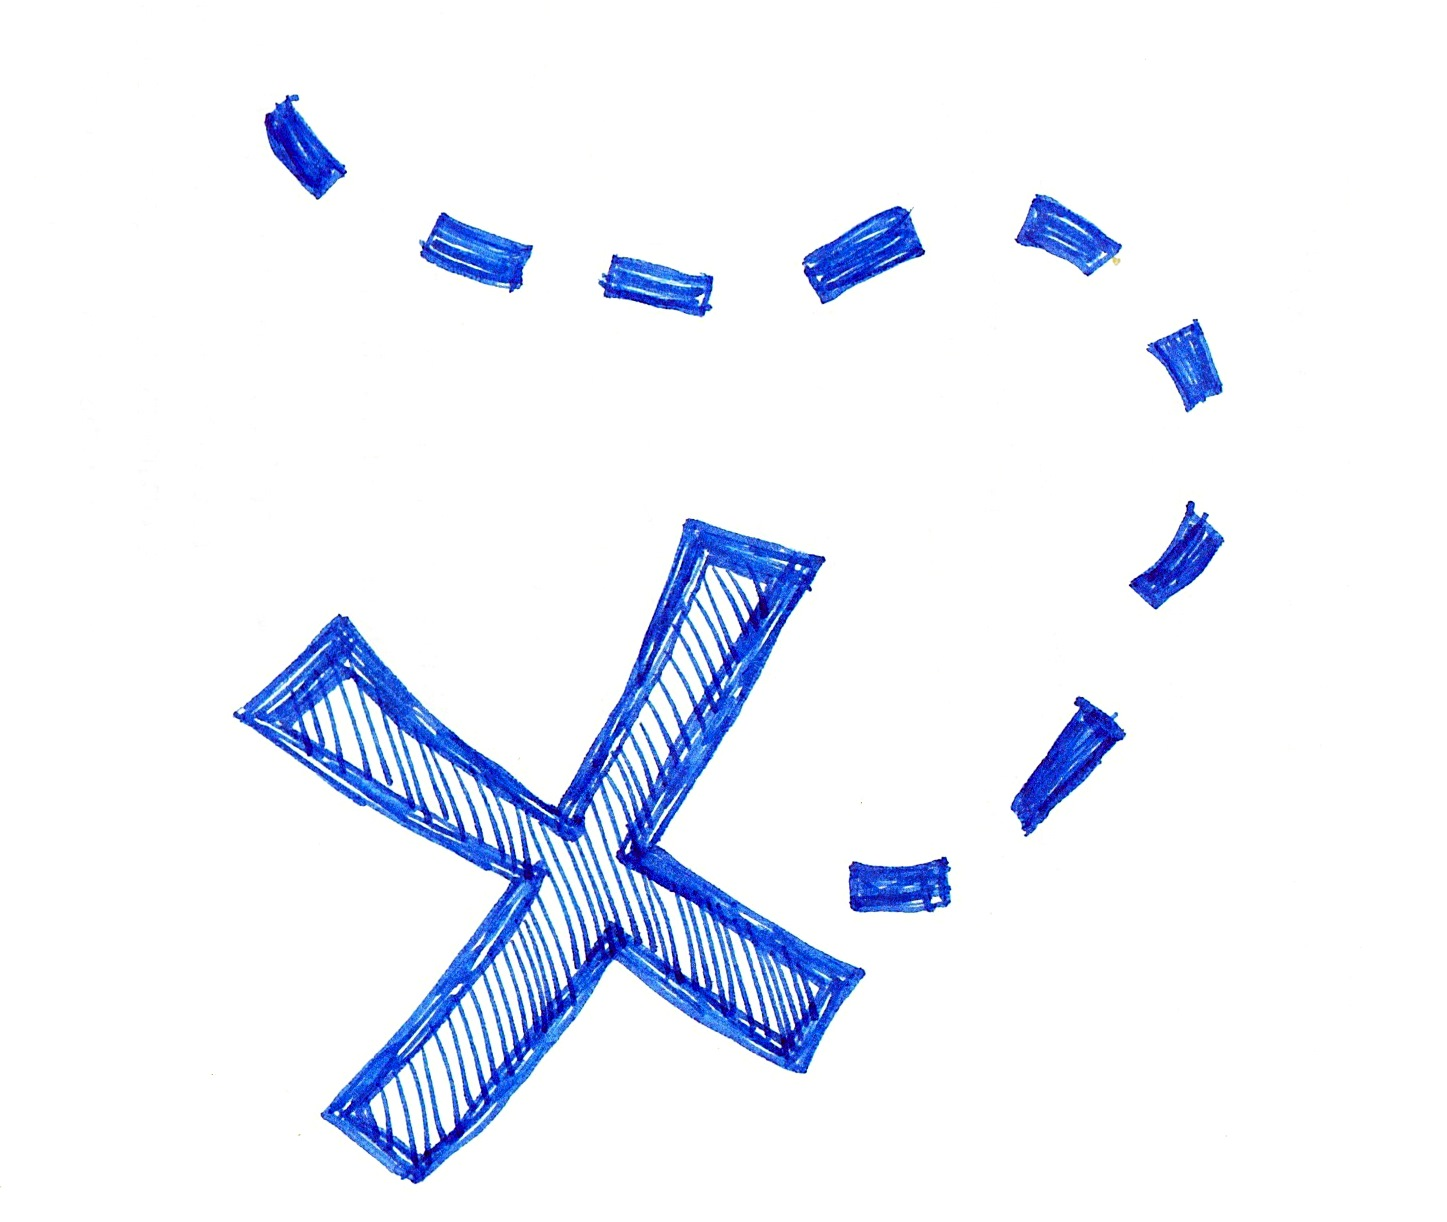 X marks the spot clipart 1 » Clipart Station.